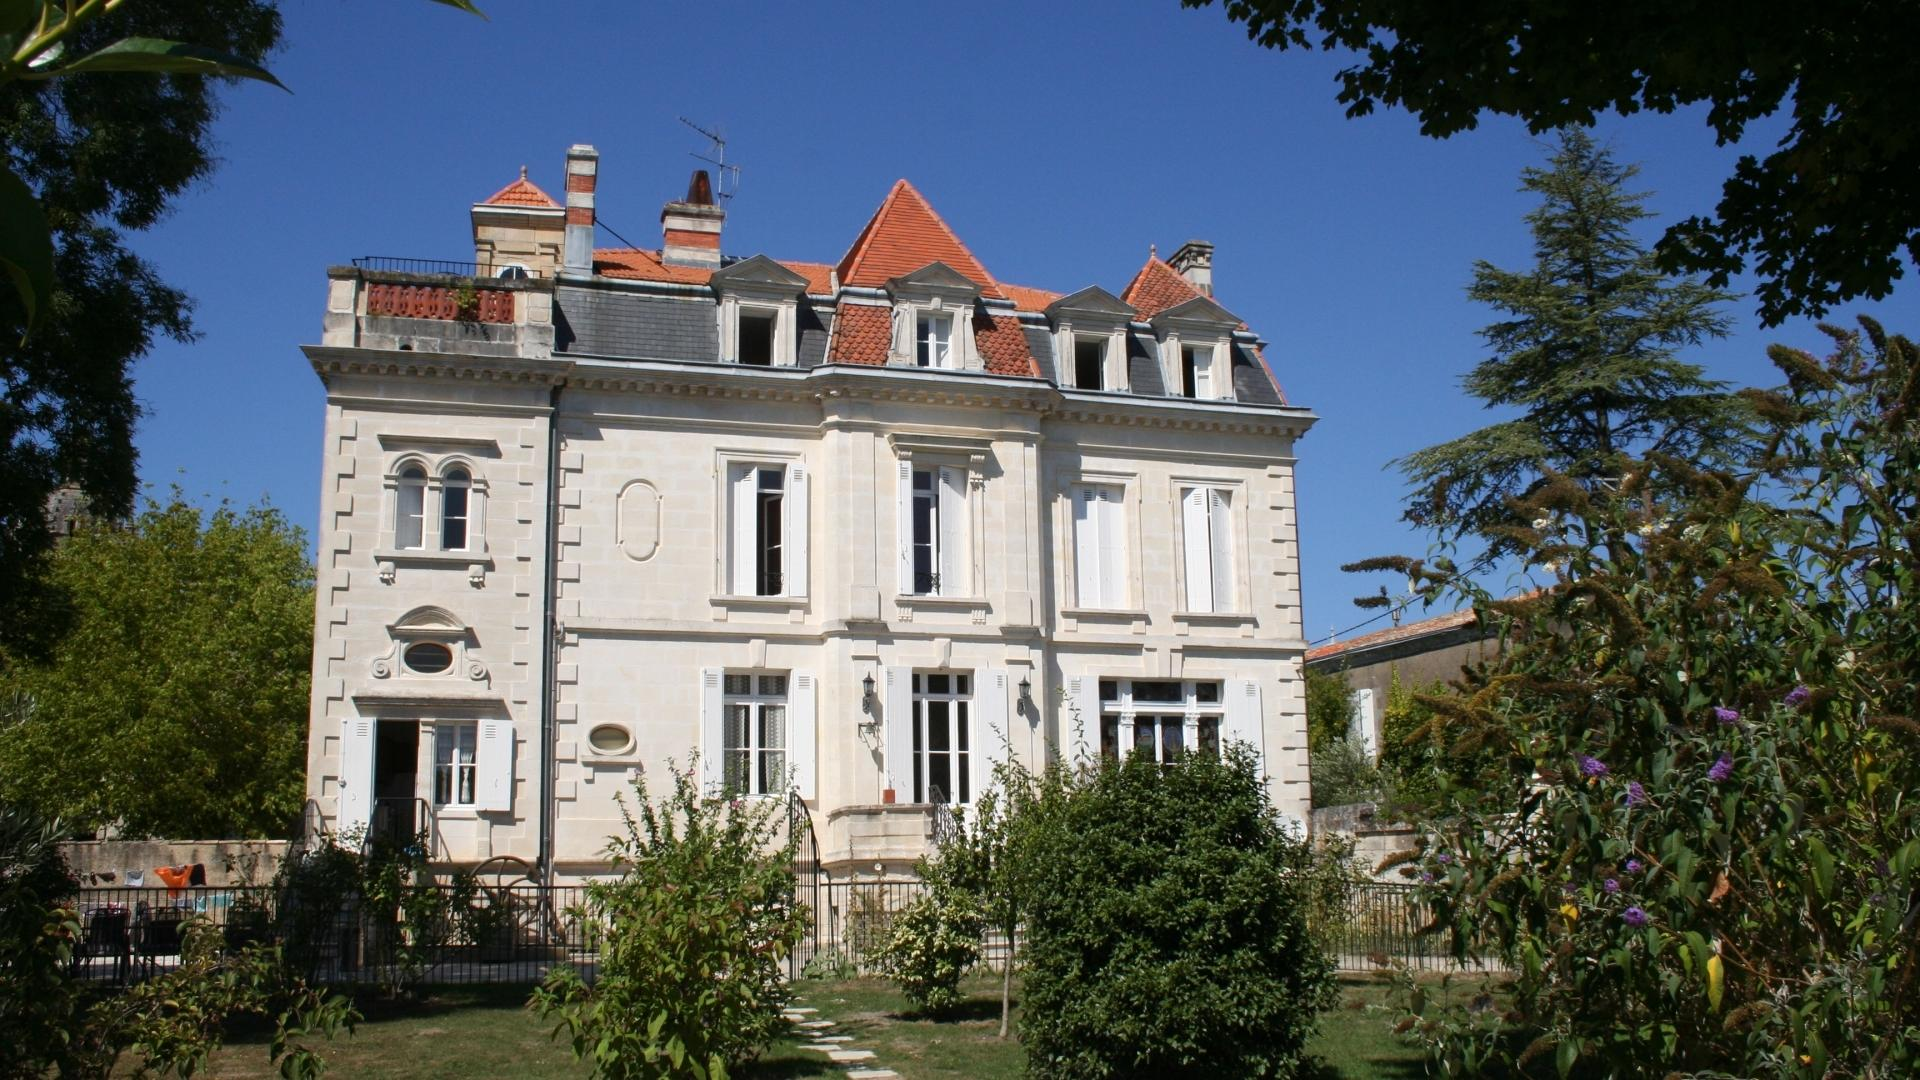 10 Bedroom Private chateau in Poitou-Charentes, France